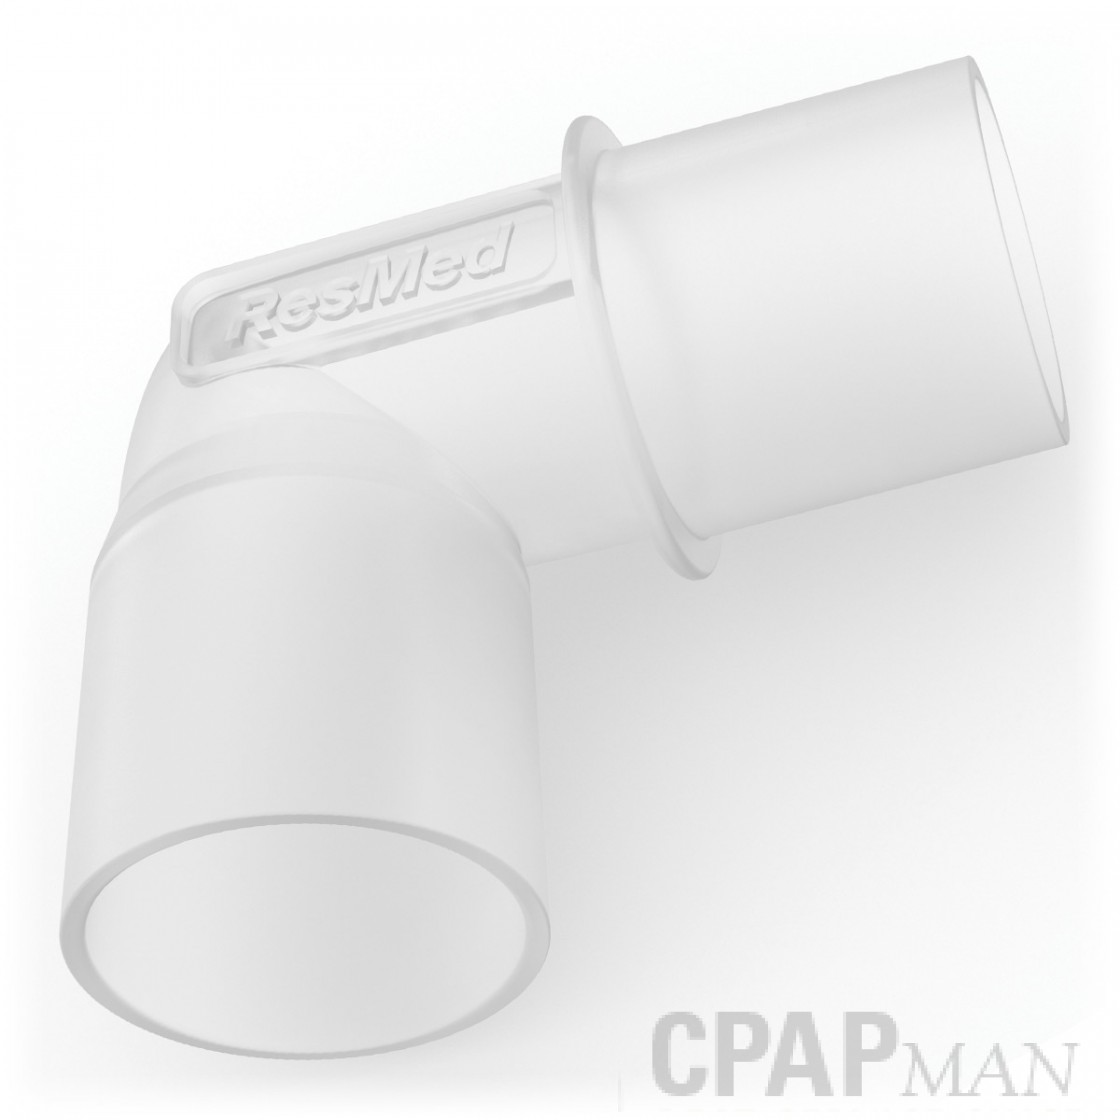 ResMed Tubing Elbow (for Plastic Tubing)